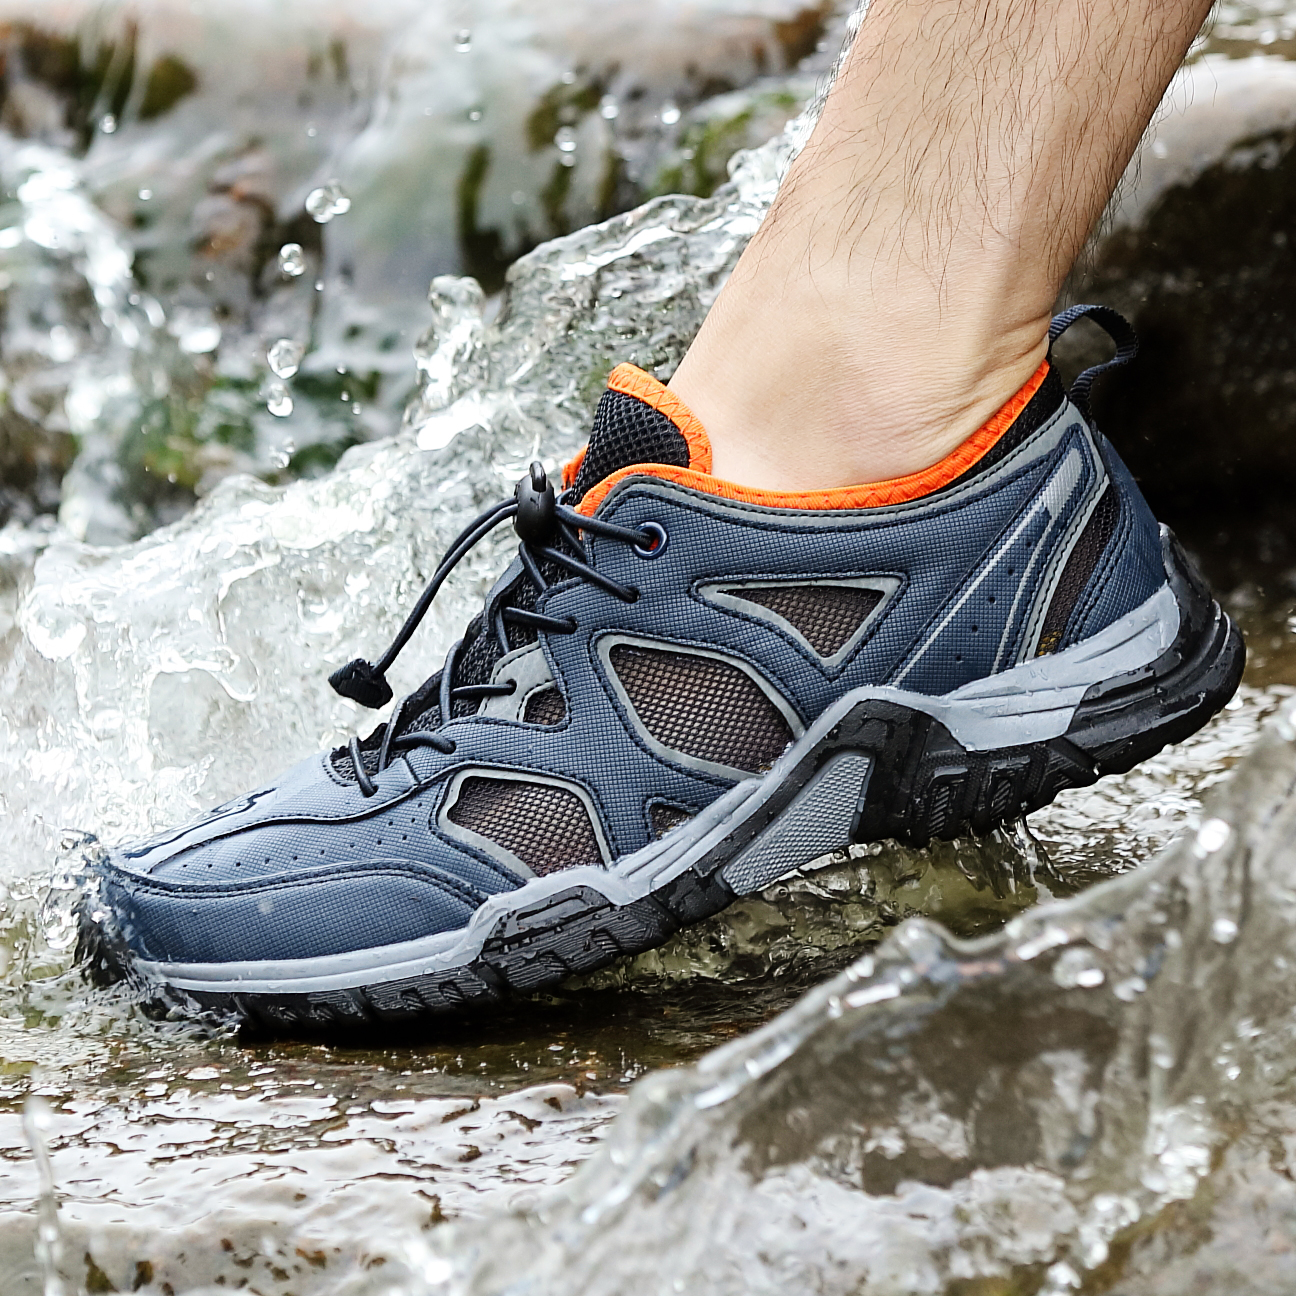 Summer Men Trekking Shoes Outdoor Professional Hiking Sneakers Male Breathable Climbing Mountain Shoes Black Hunting Sneakers|Hiking Shoes| |  - title=